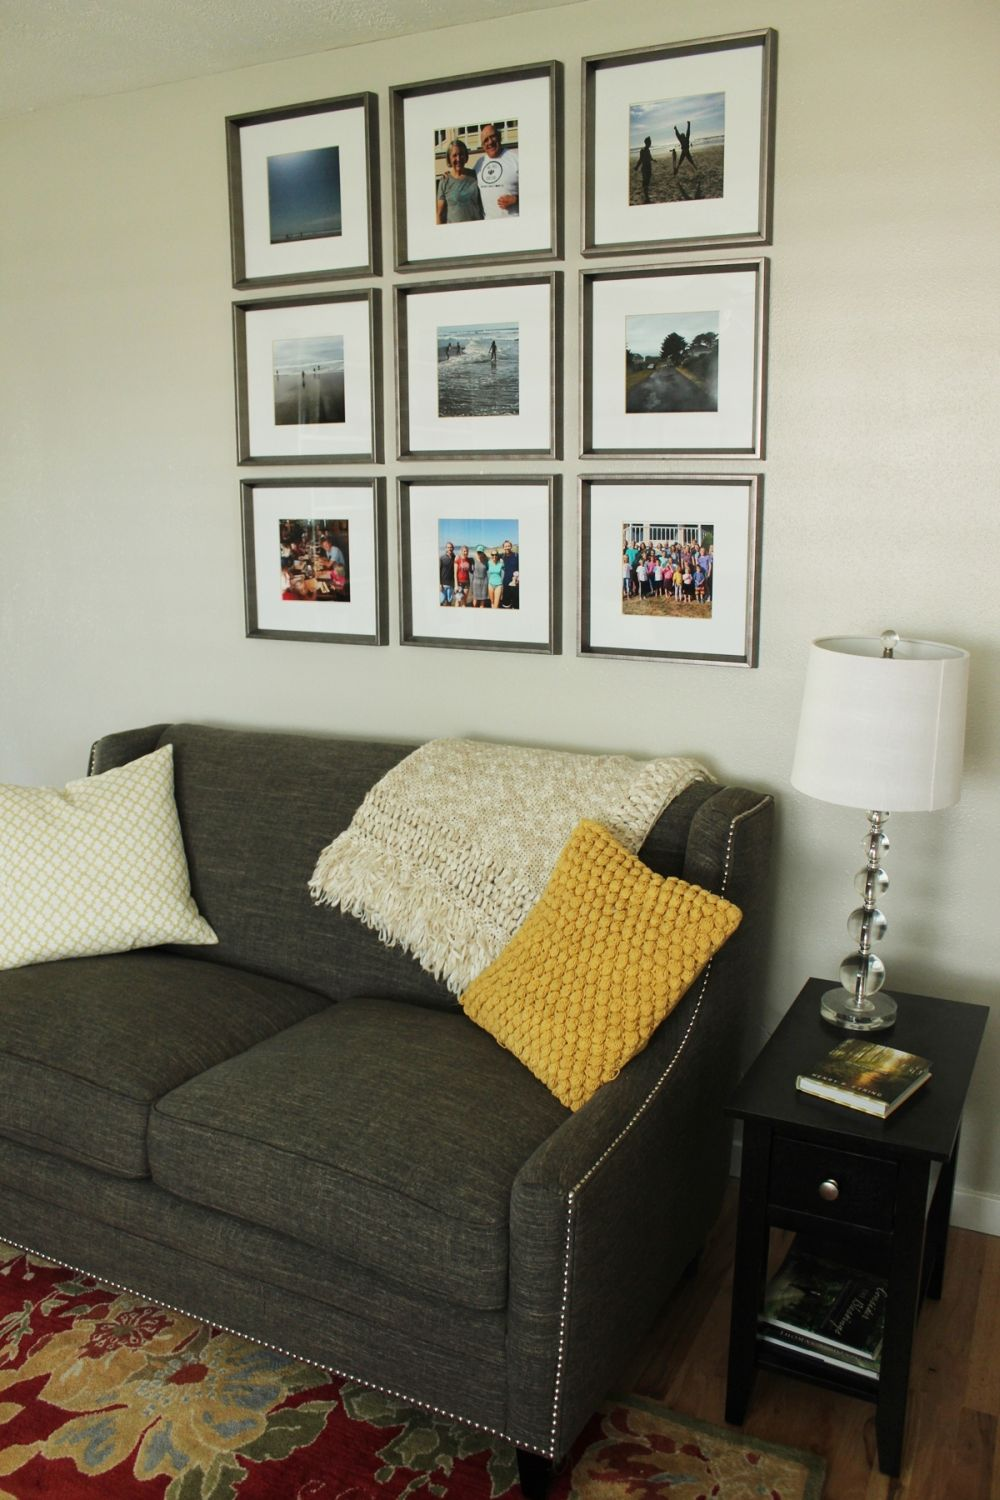 How to Decorate a Living Room Simply and Stylishly